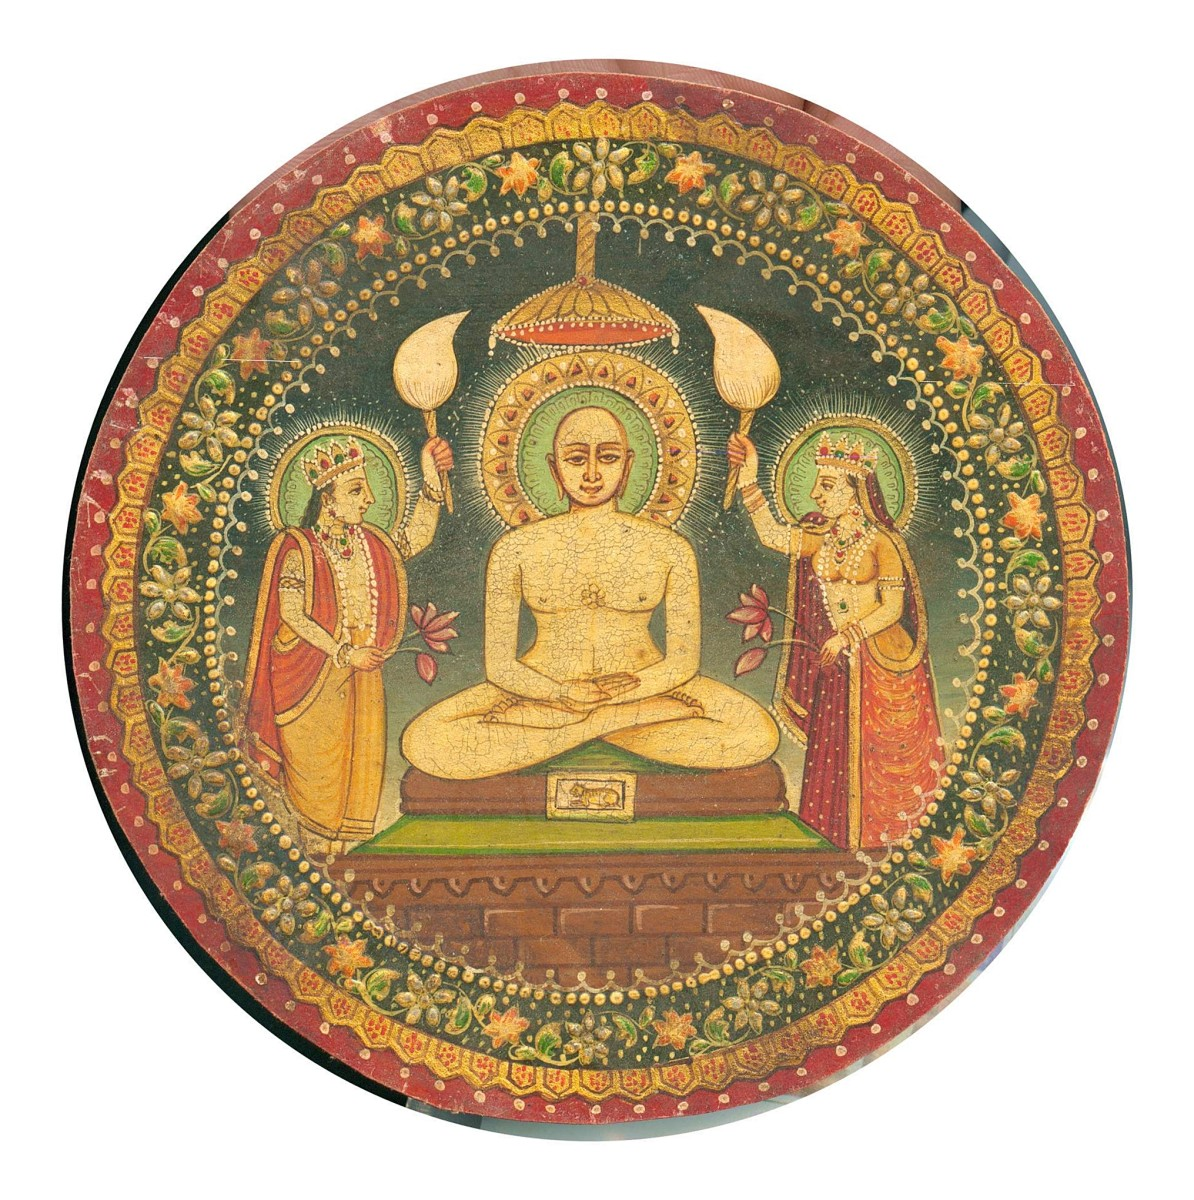 Miniature Paintings in Jain  Manuscripts